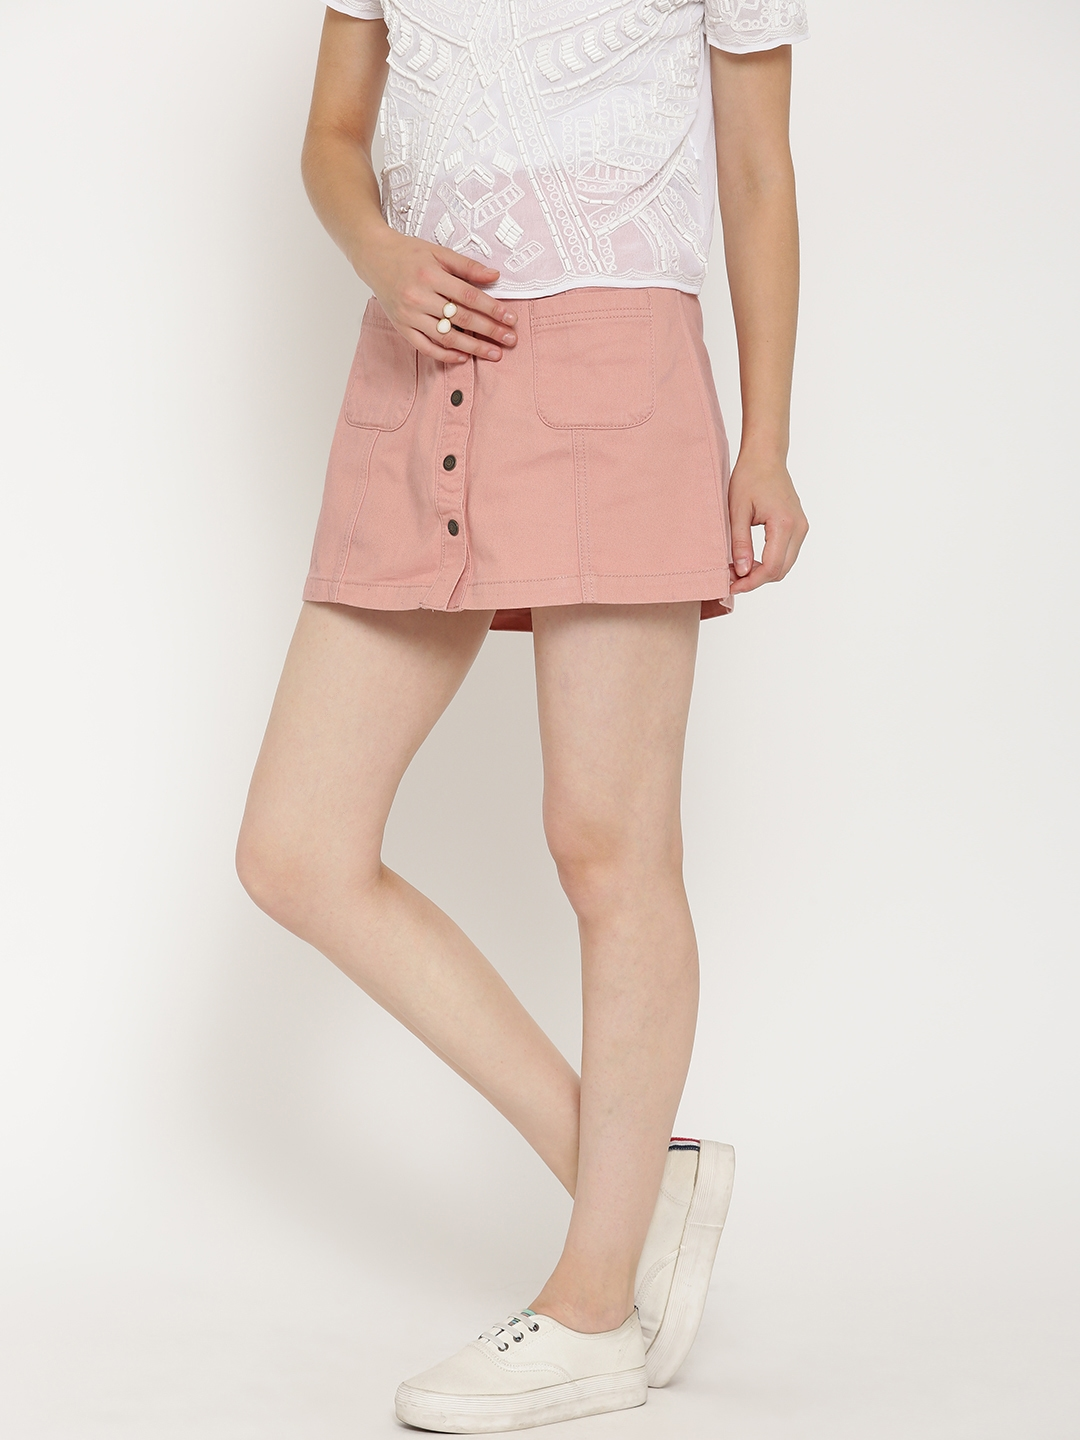 84610e95c Buy FOREVER 21 Dusty Pink A Line Mini Skirt - Skirts for Women ...